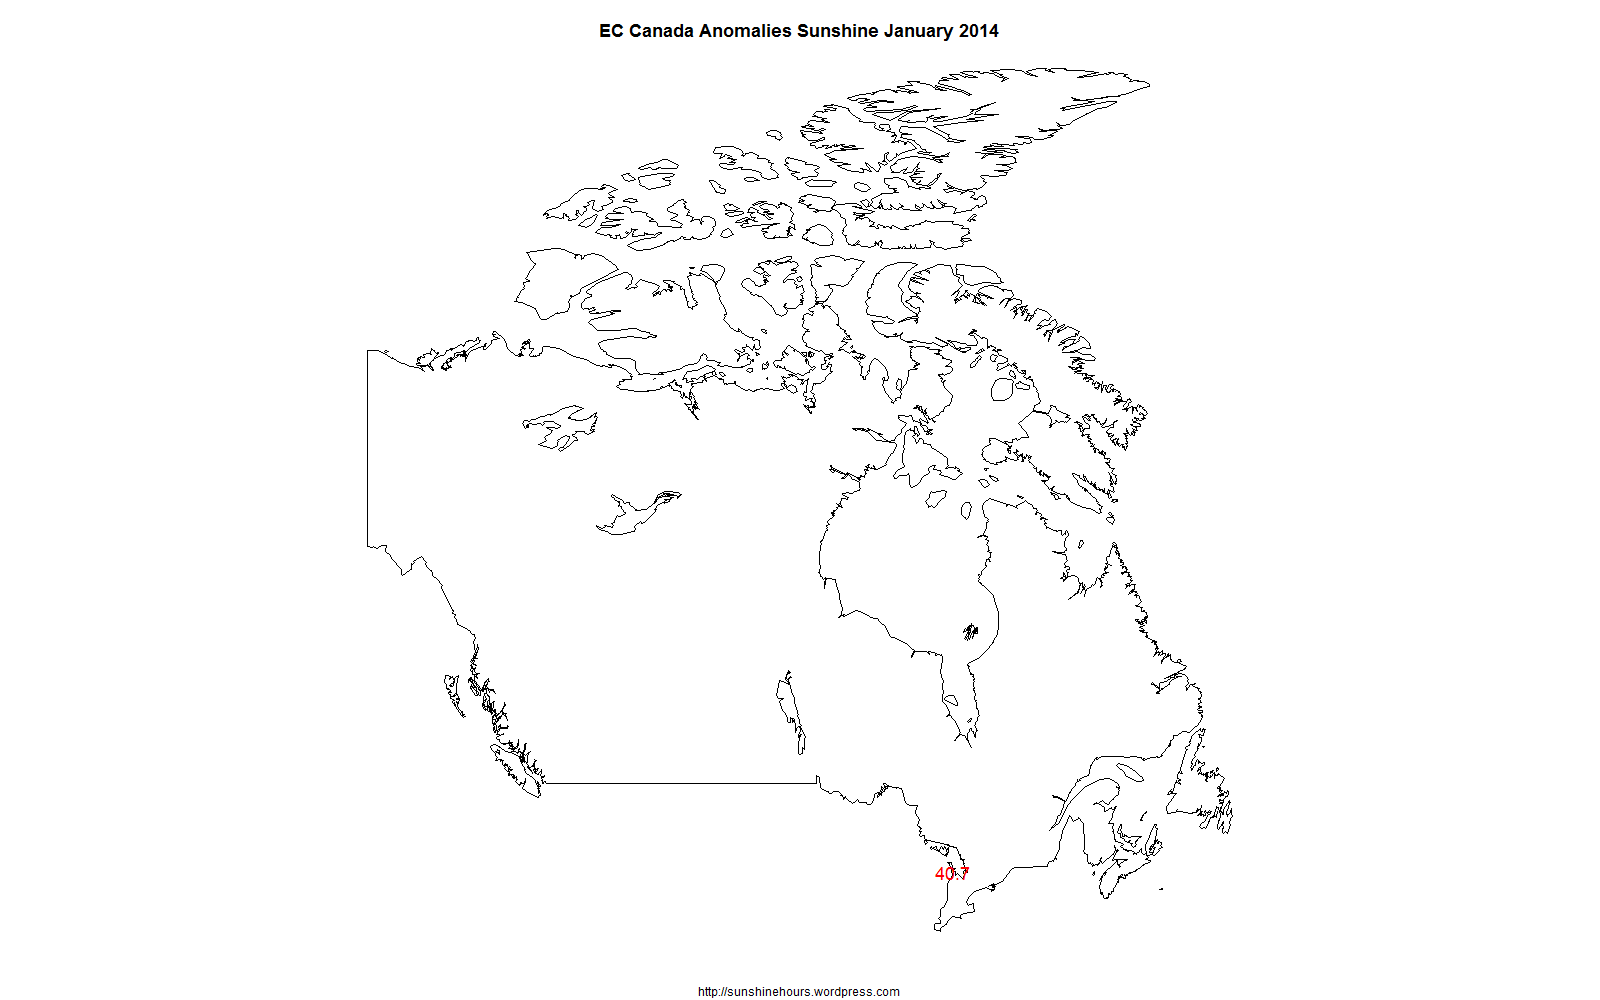 The Sad State of Environment Canada's Sunshine Data